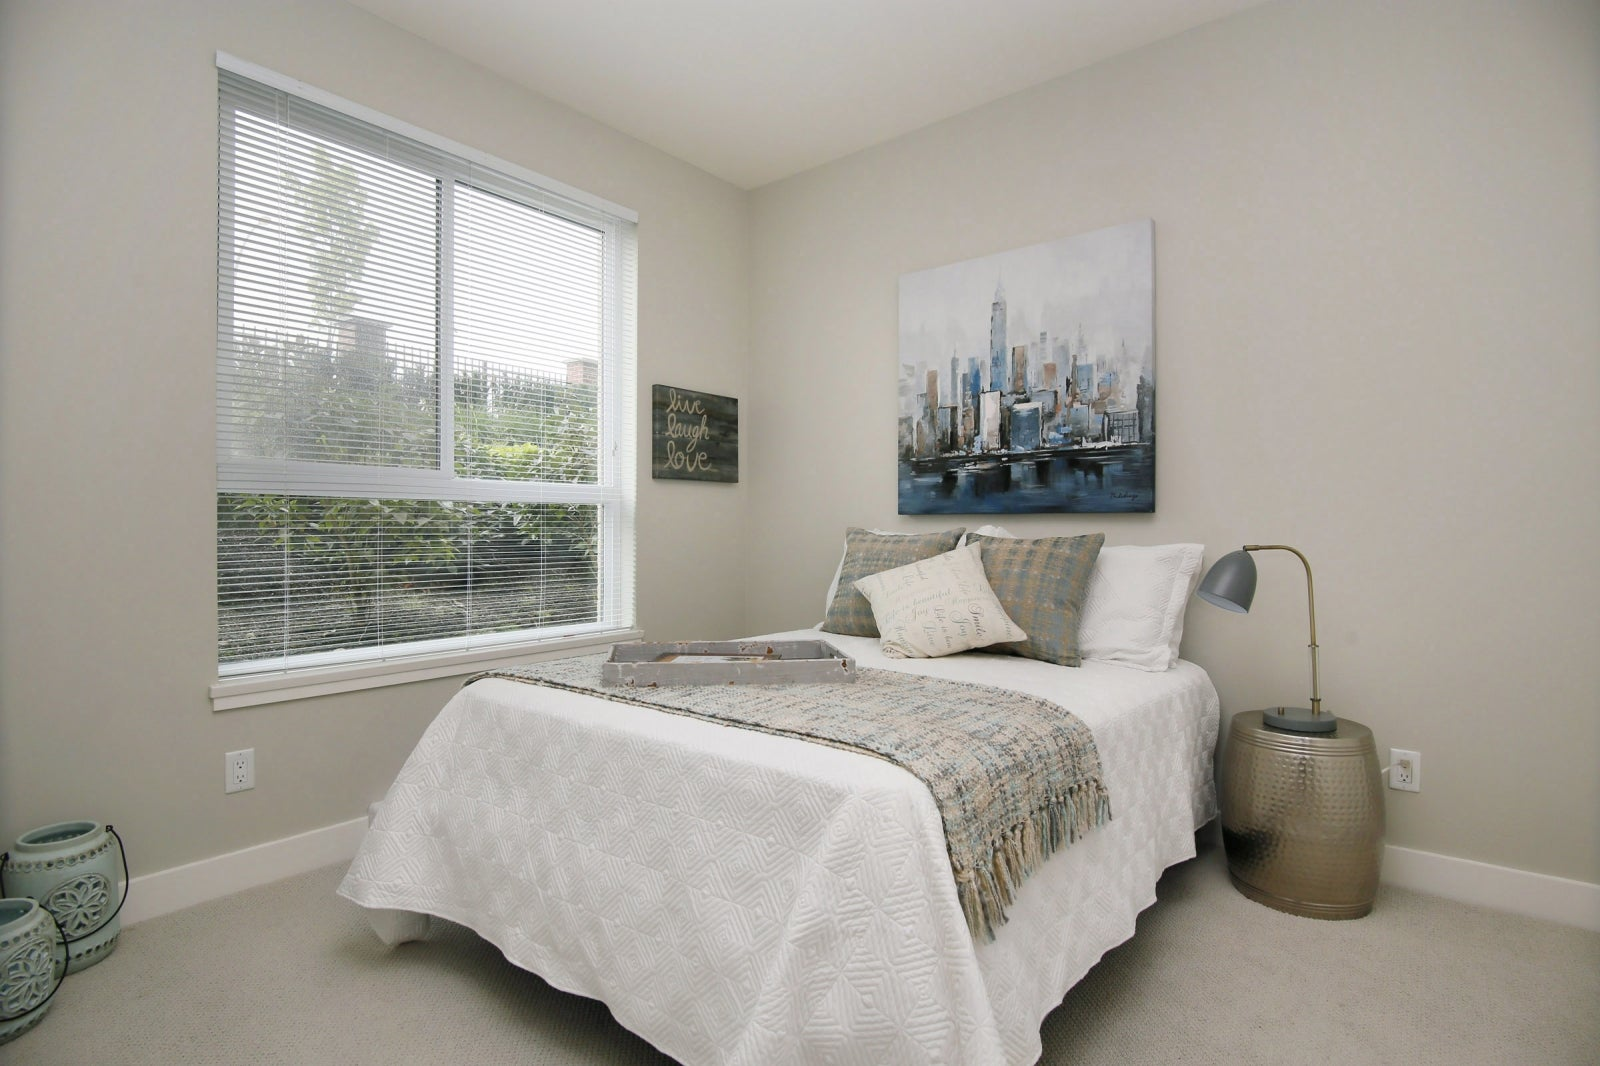 111 3090 GLADWIN ROAD - Central Abbotsford Apartment/Condo for sale, 2 Bedrooms (R2194428) #13